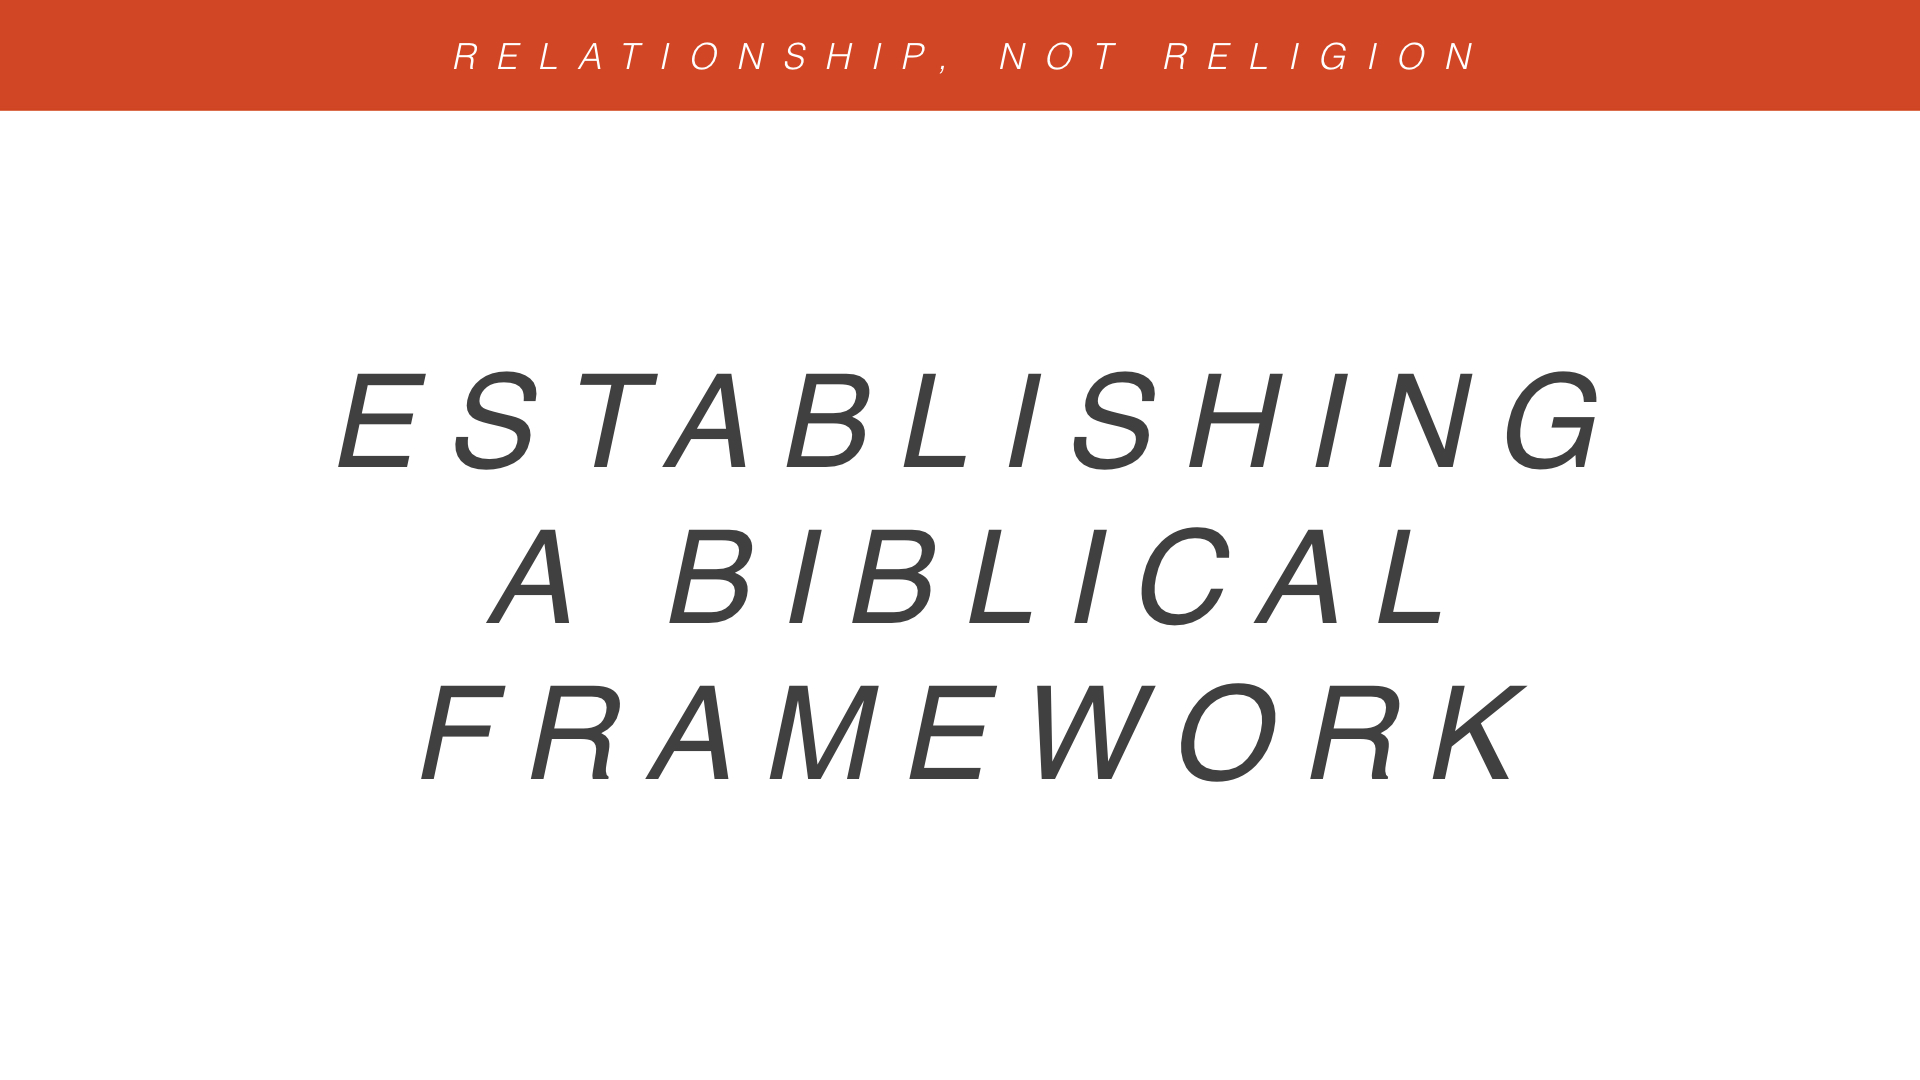 Real Christianity - Week 4 - Relationship, Not Religion copy.005.jpeg